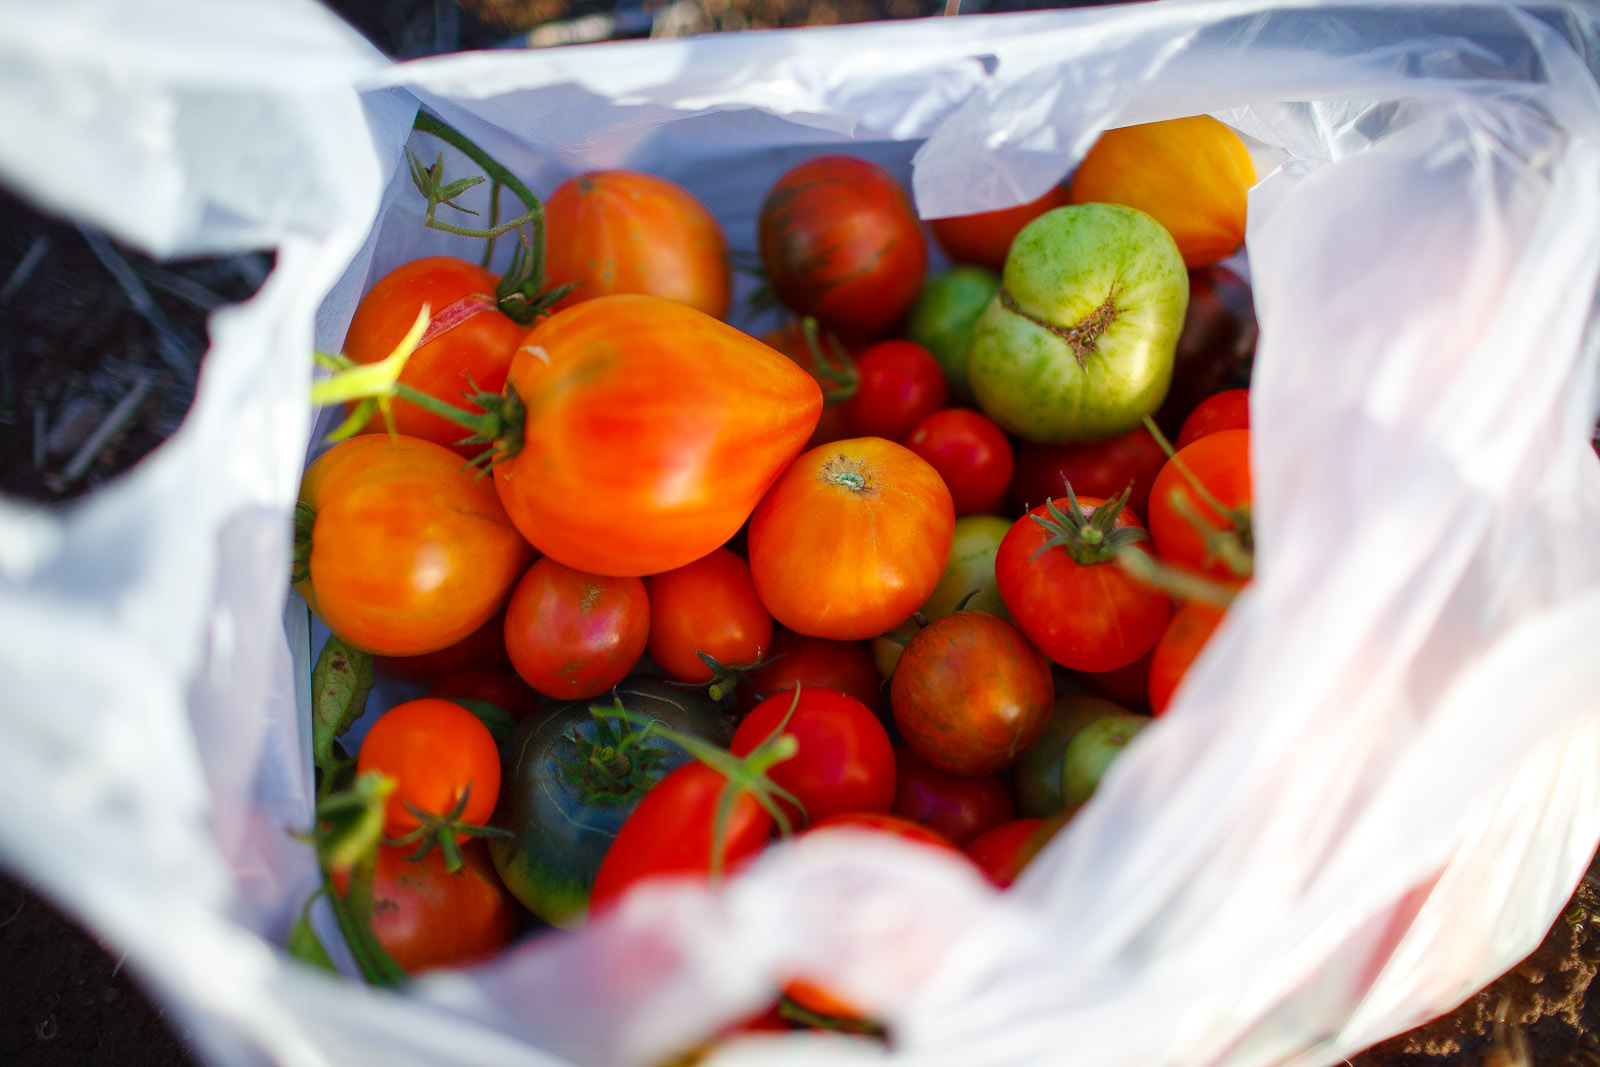 The-French-Laundry-Yountville-California-Tomatoes-in-a-bag-from-the-garden-of-The-French-Laundry.jpg